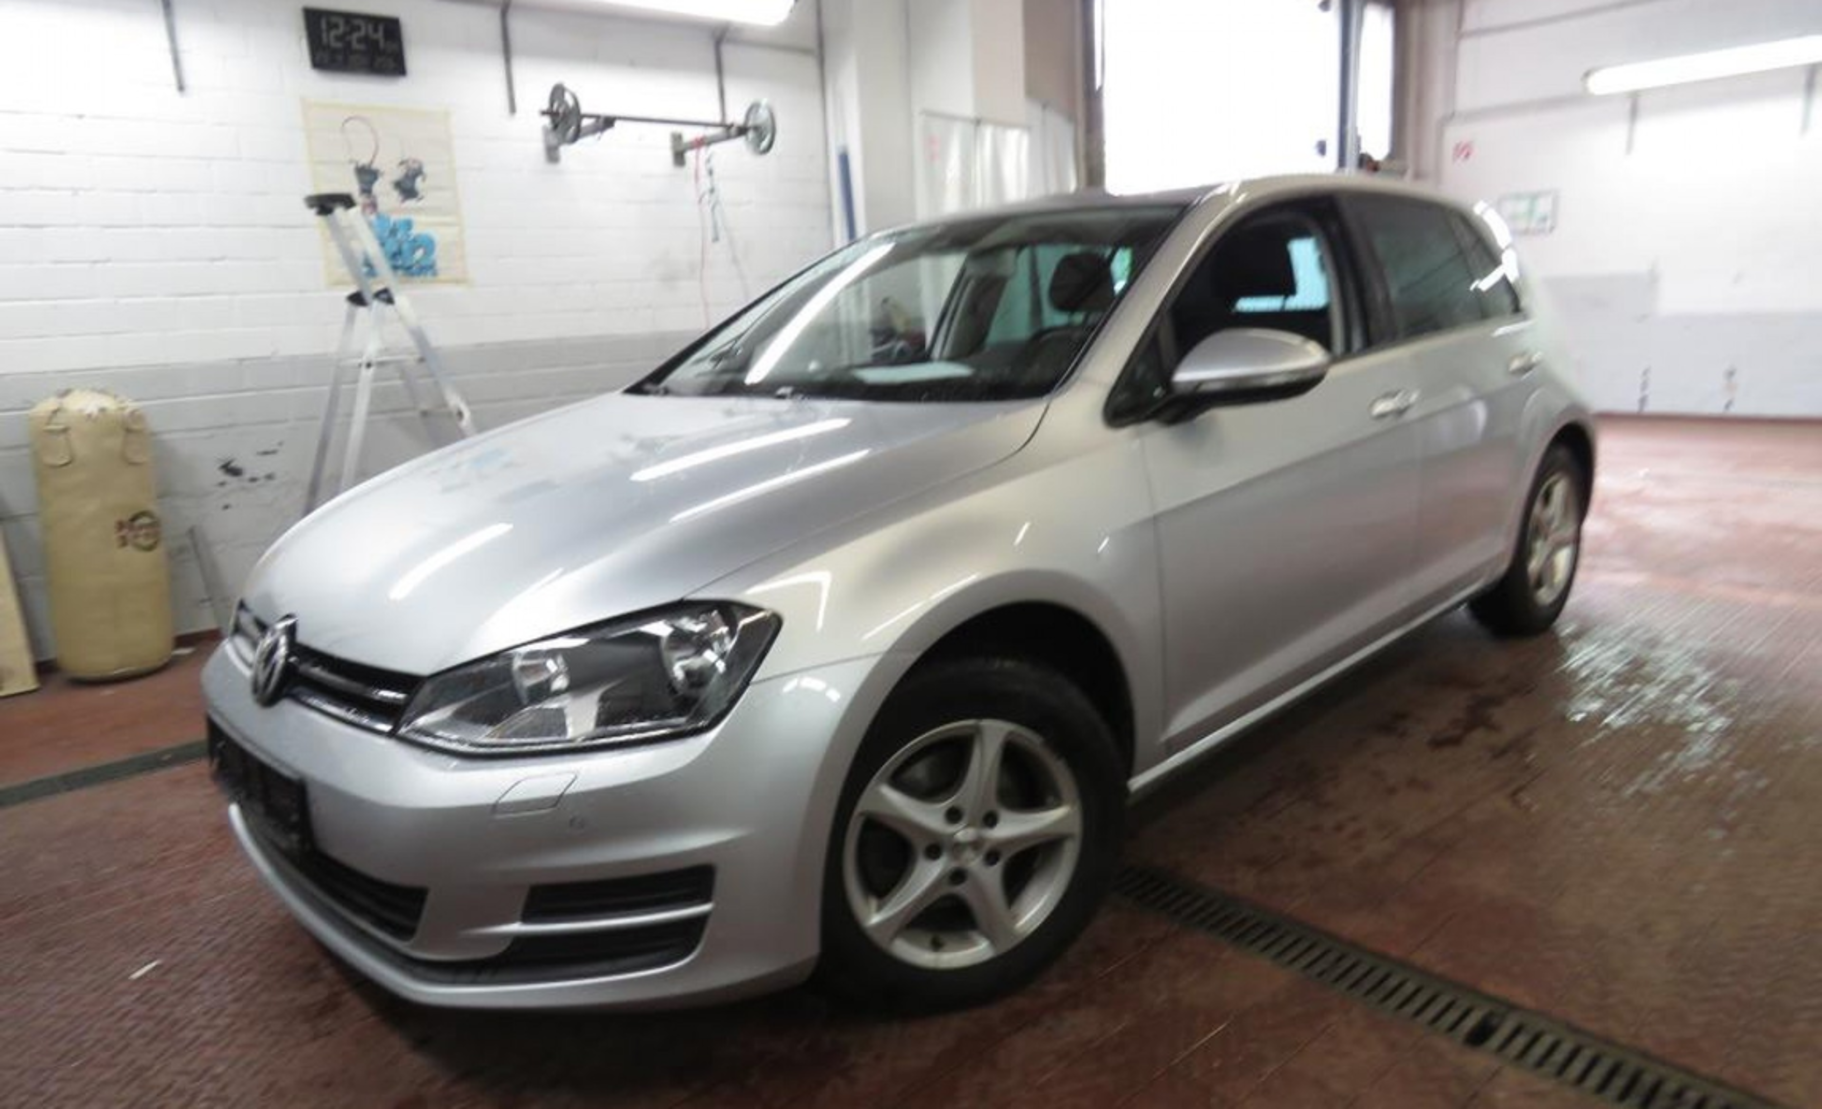 Volkswagen Golf Golf 1.2 TSI BlueMotion Technology DSG, Comfortline (554506) detail1